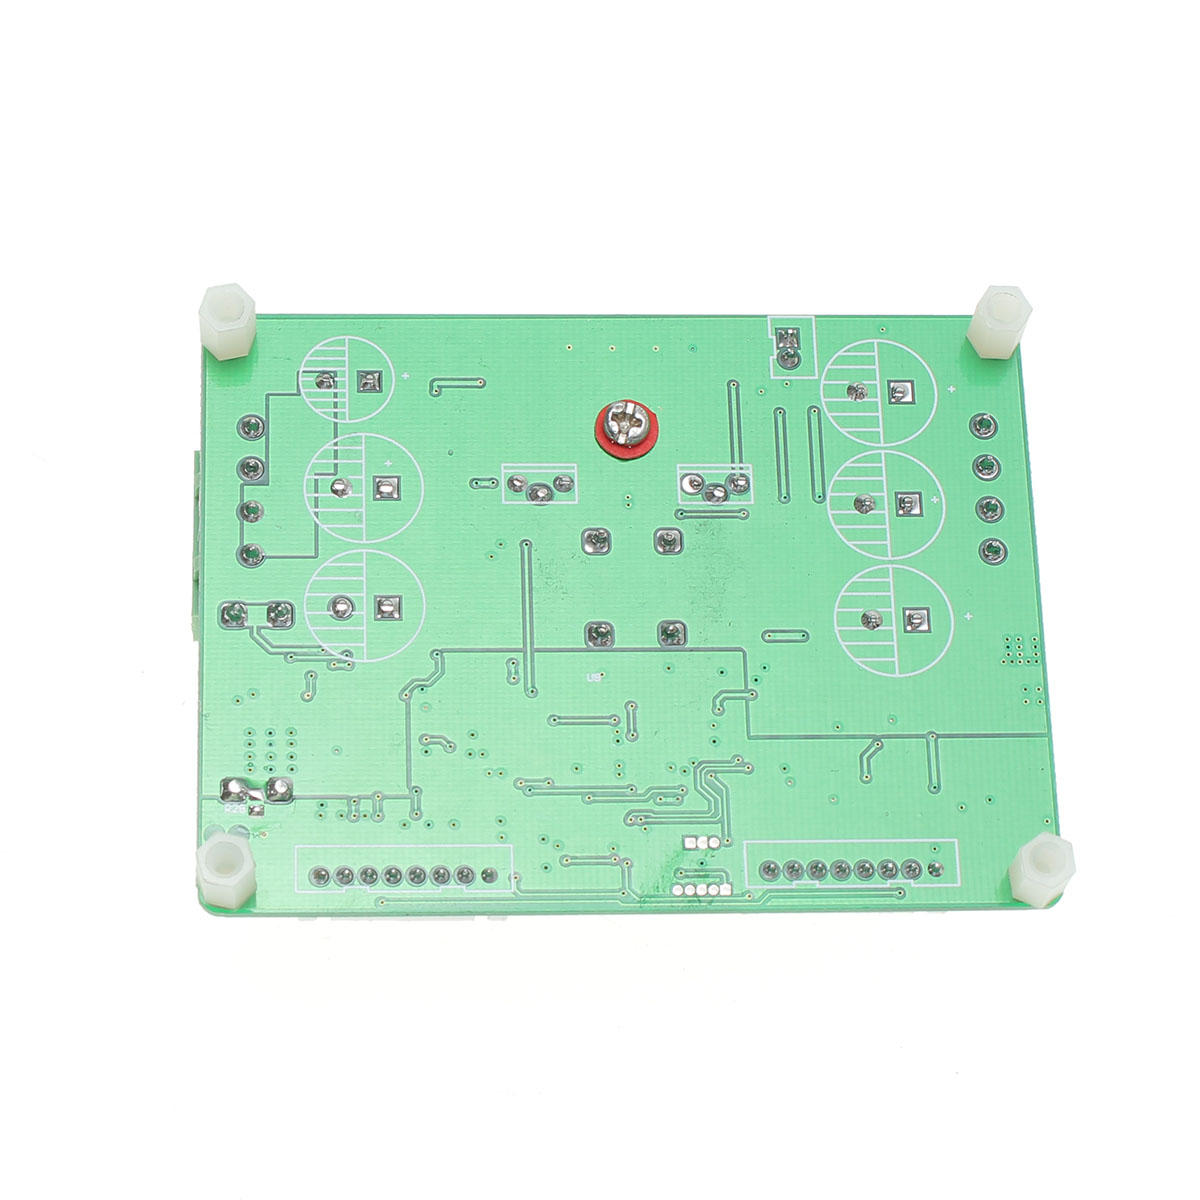 20pcs LM7809 DC/AC 12-24V to 9V DC Output Three Terminal Voltage Regulator Power Supply Step Down Module 1.2A - 9